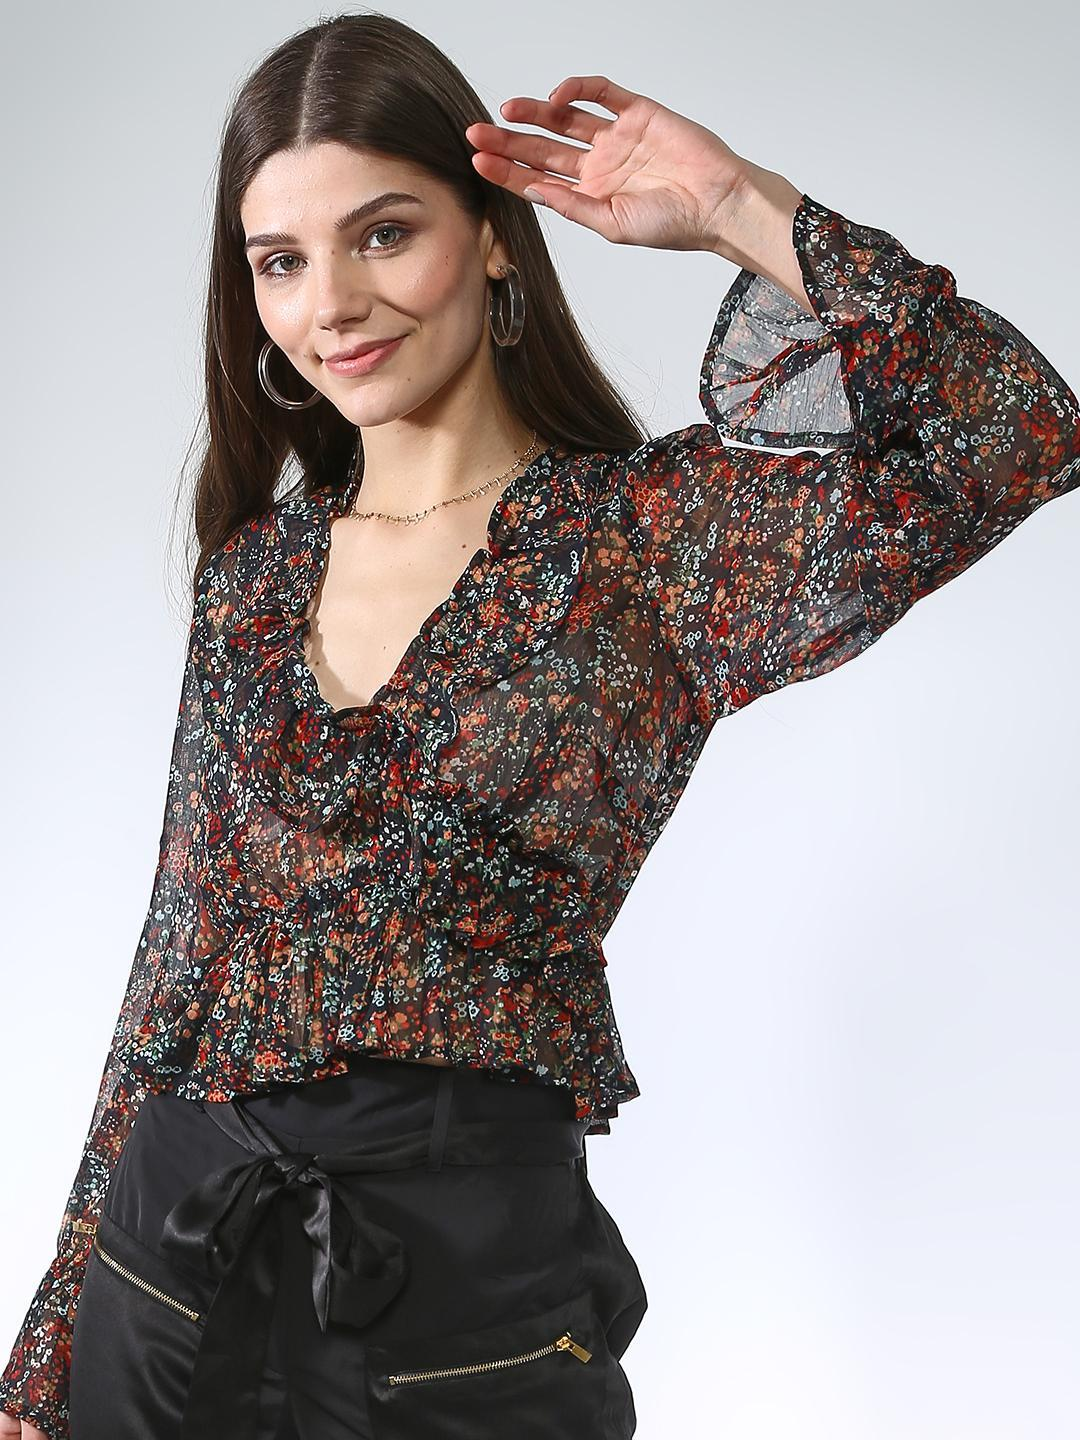 Oxolloxo Black All Over Floral Top 1